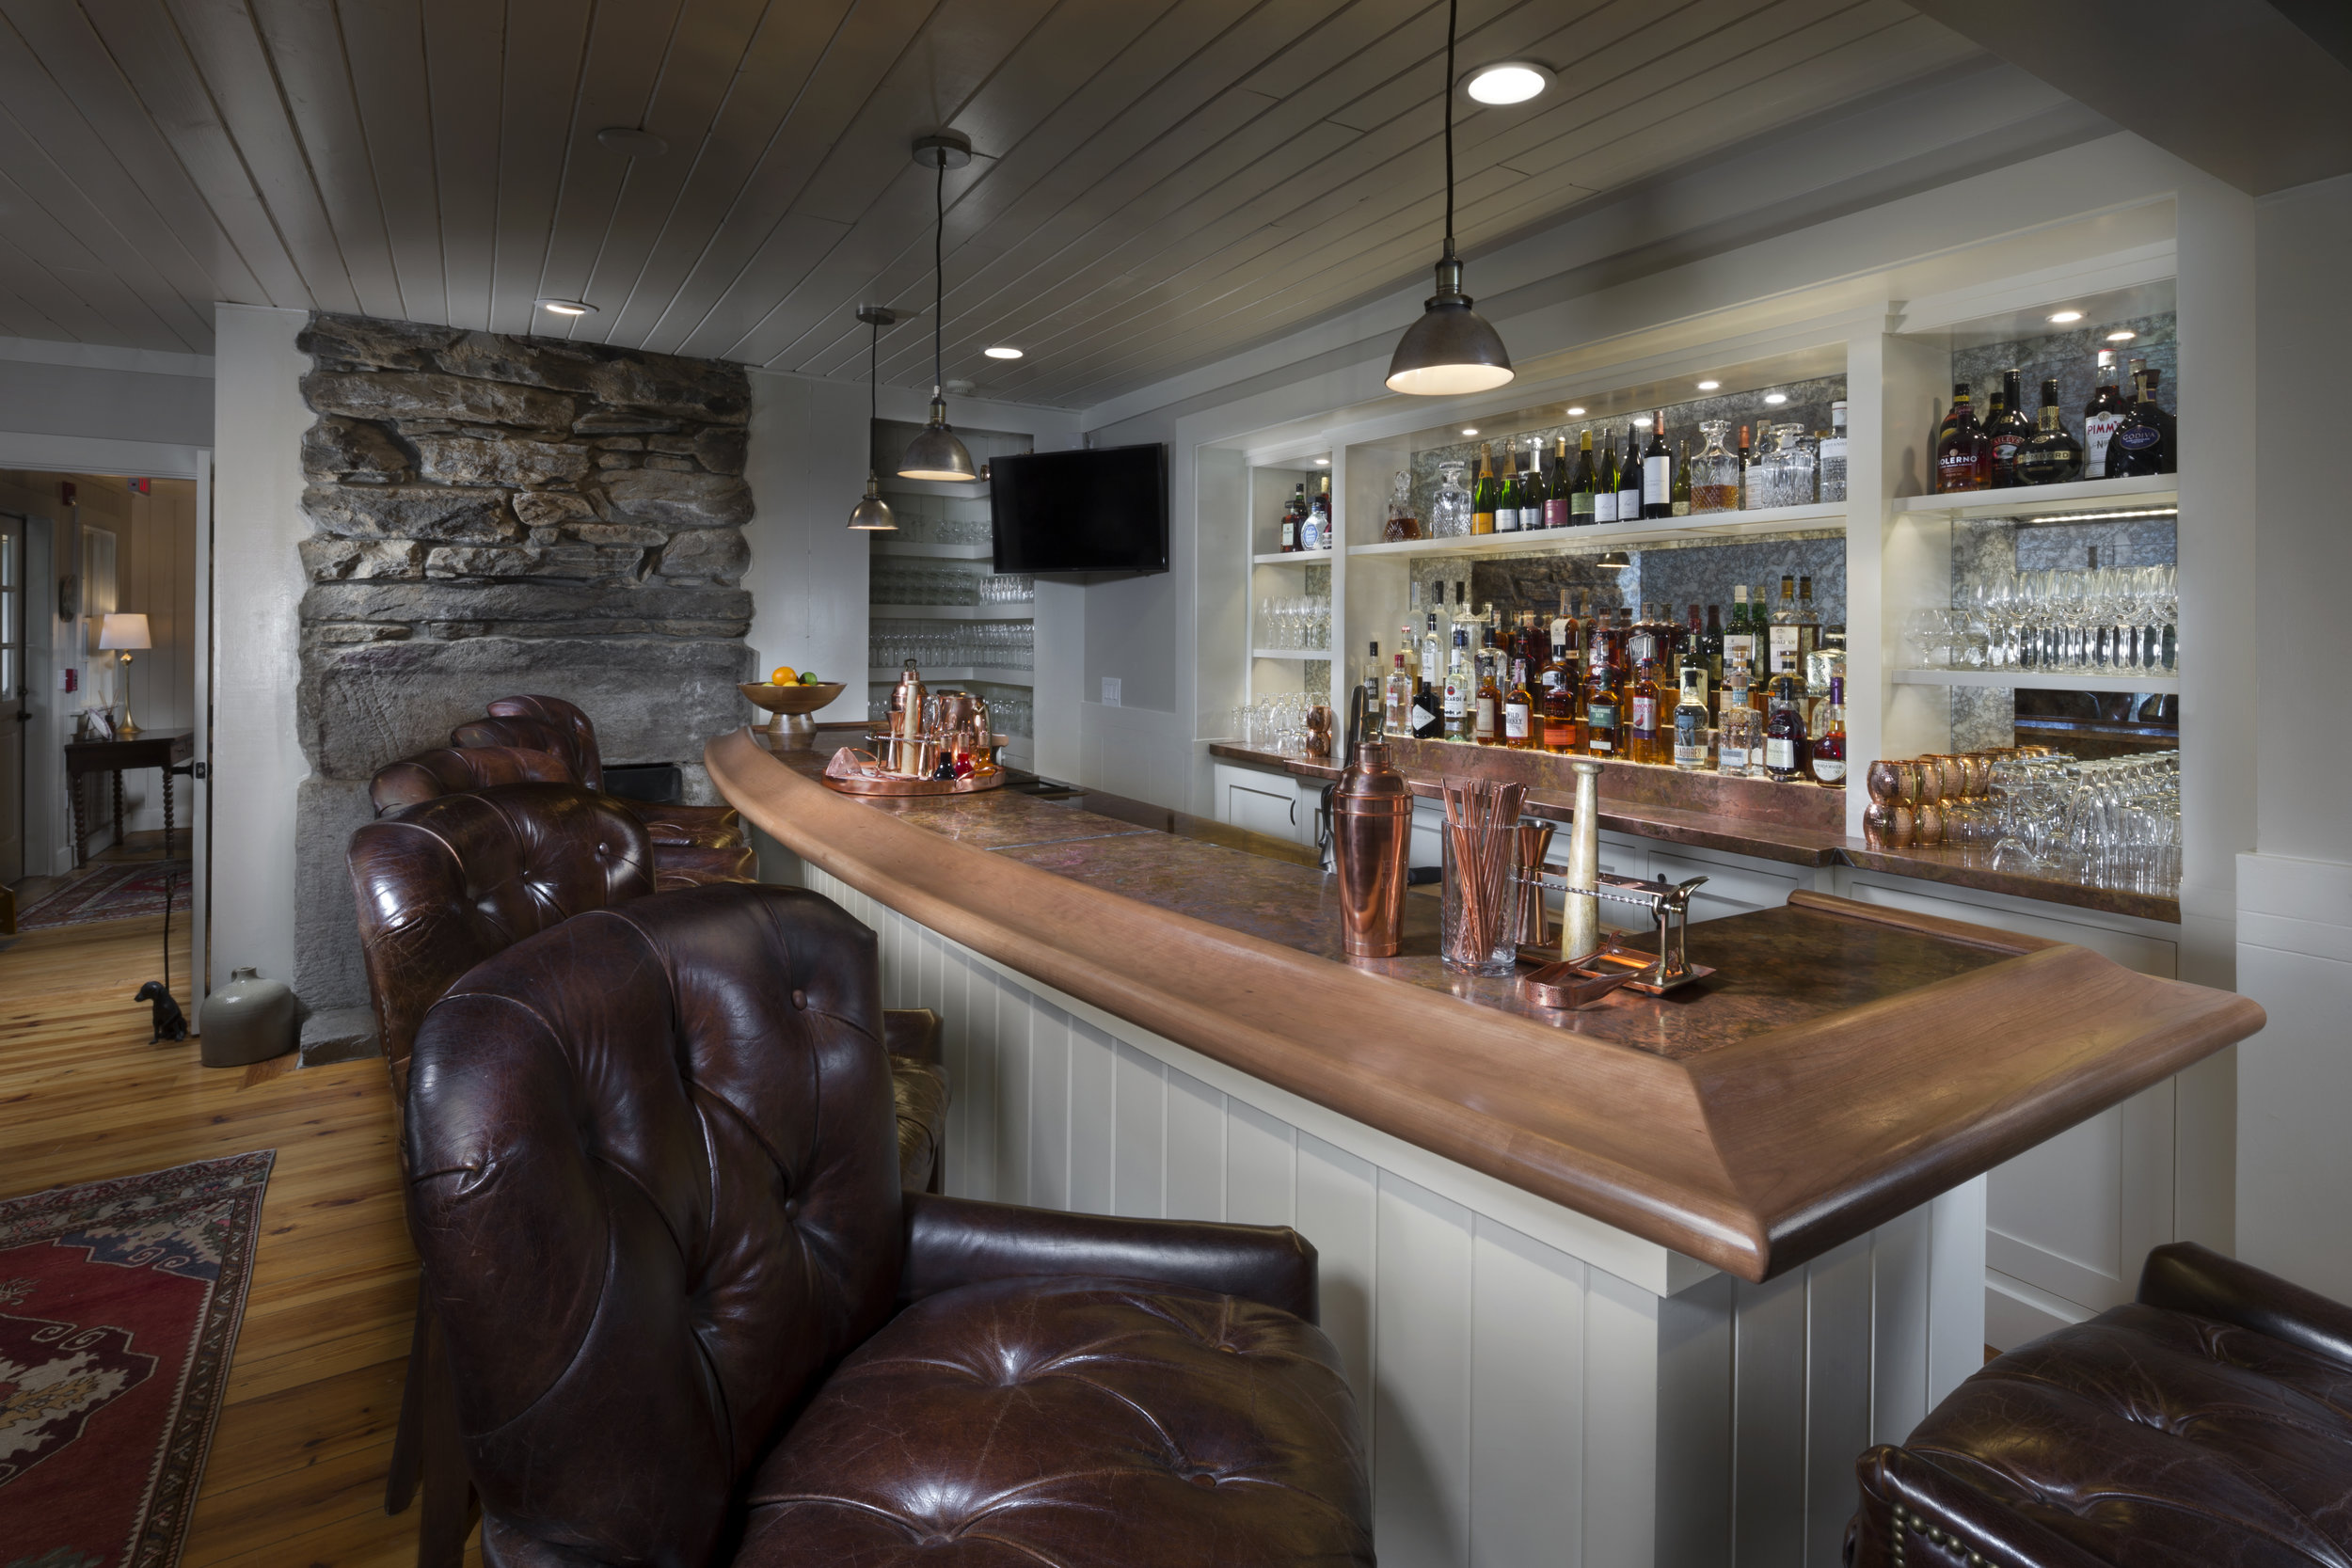 half_mile_farm_bar_03.jpg